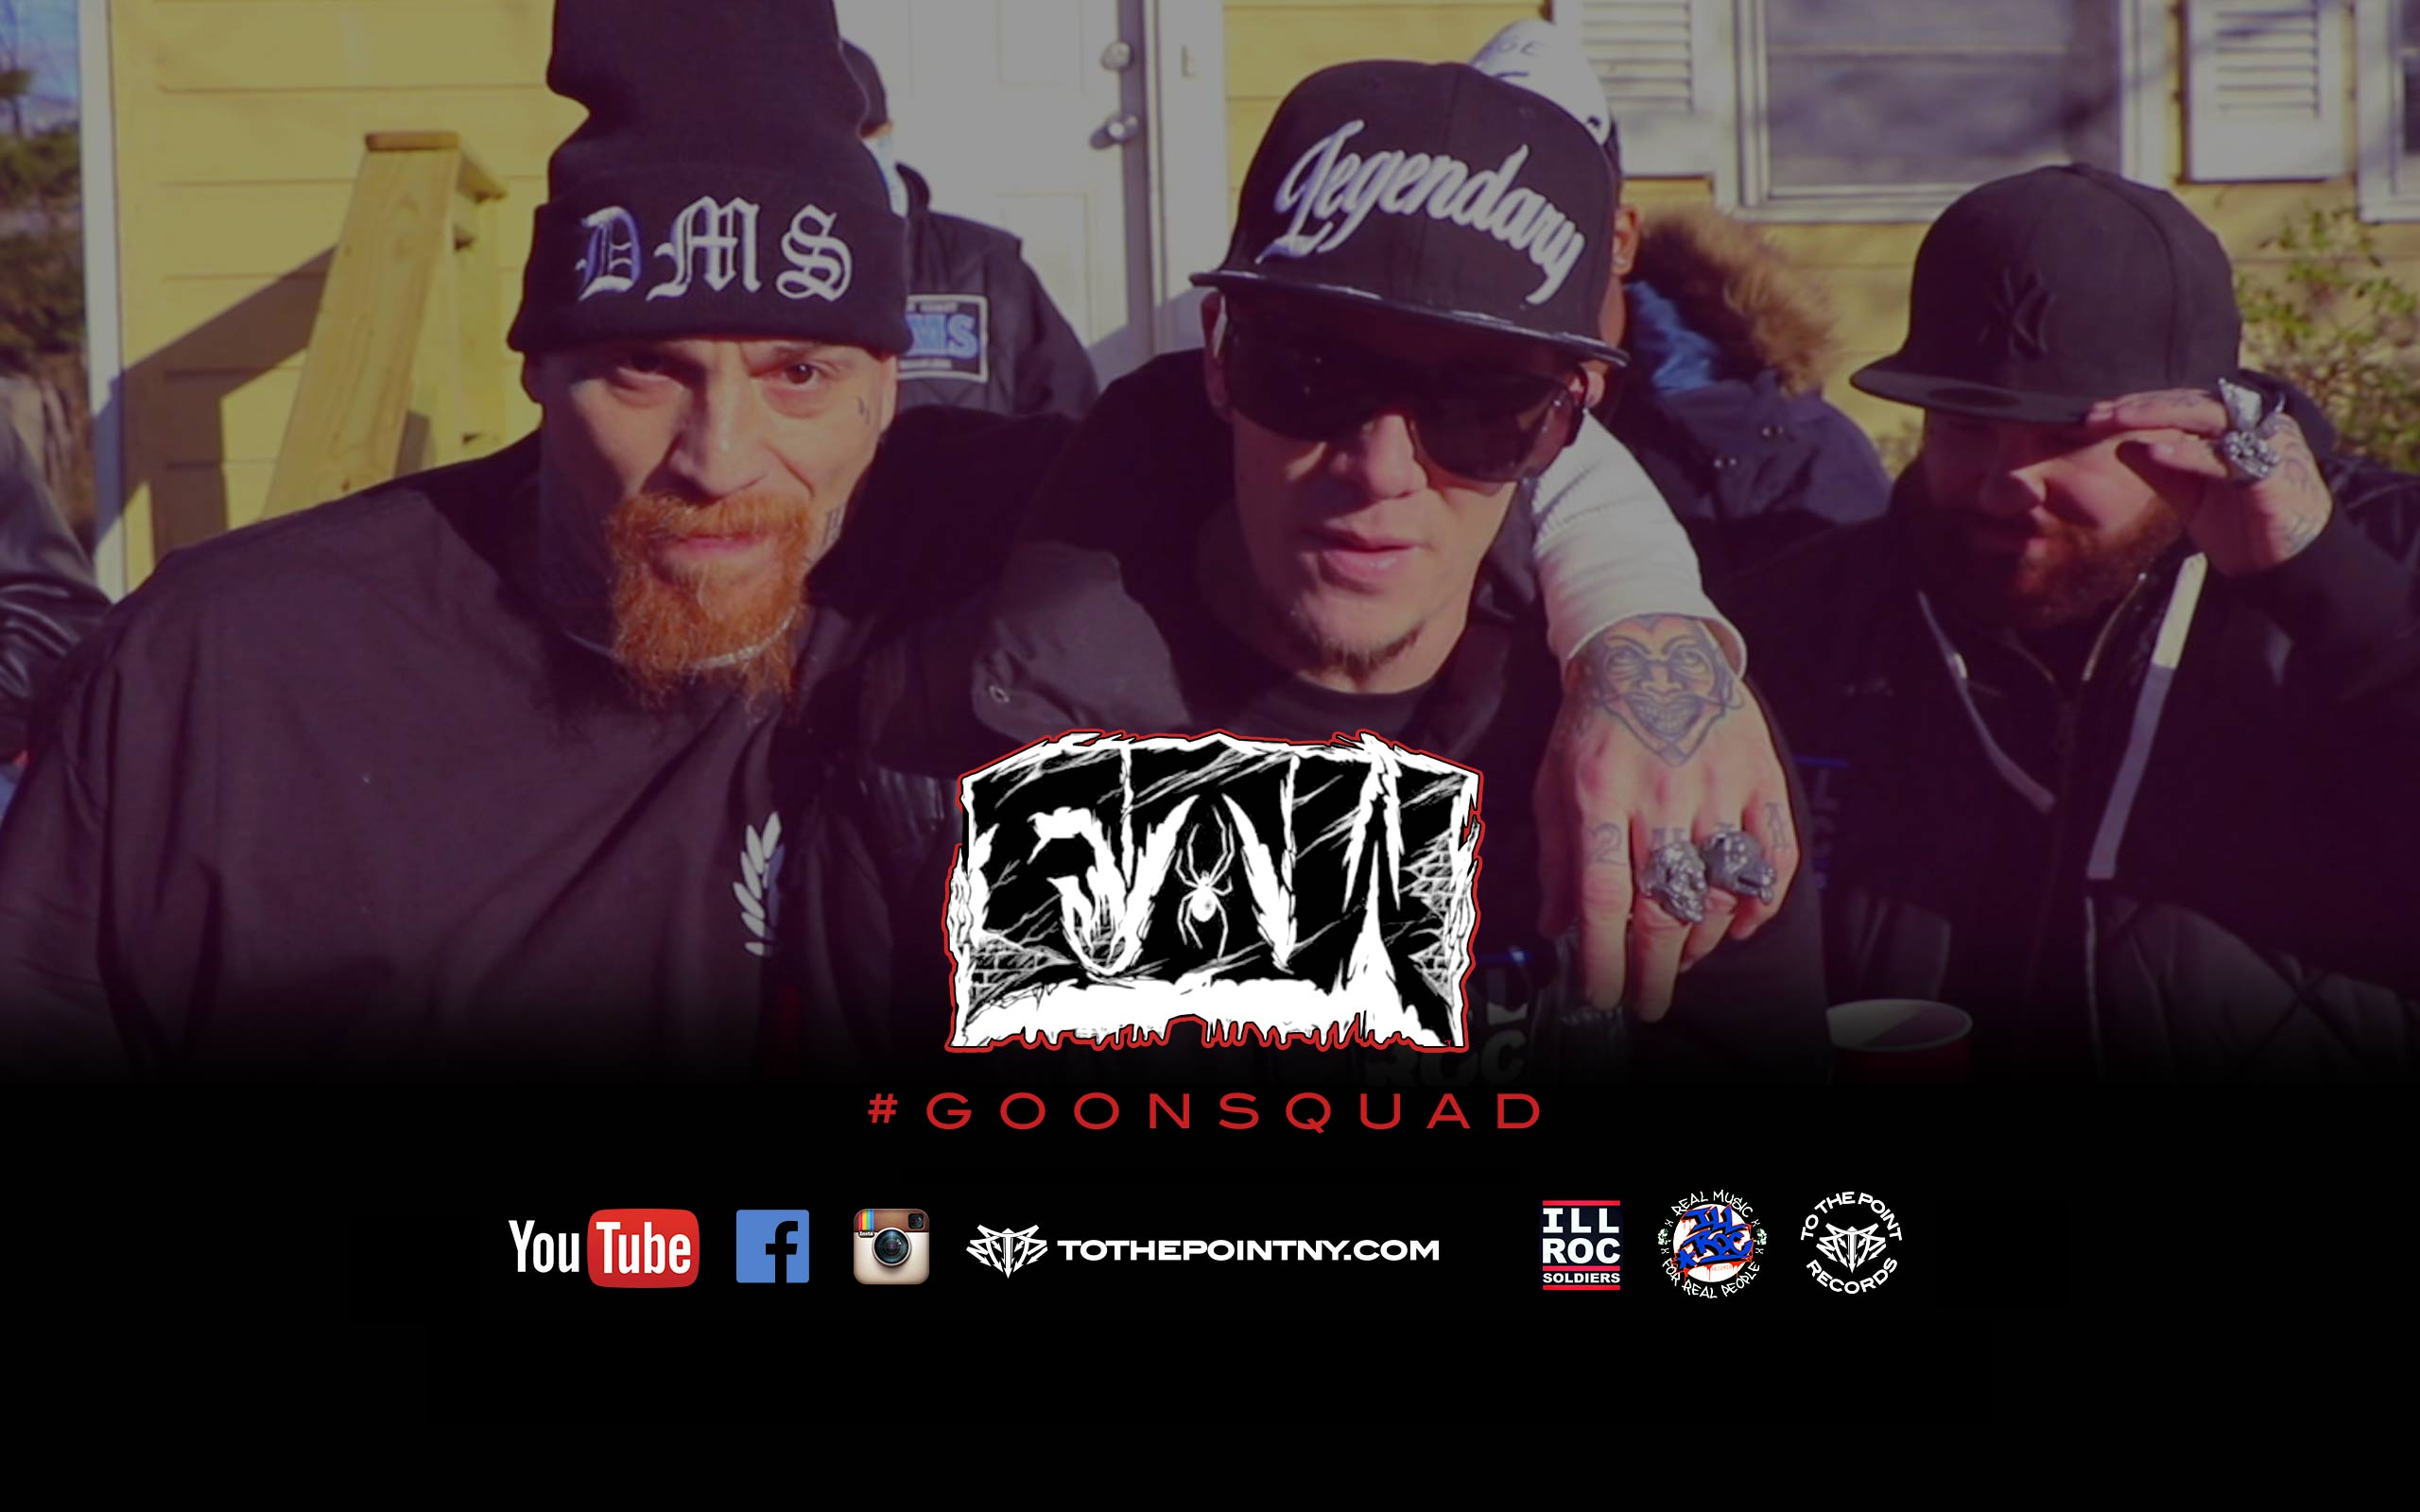 ftw-goonsquad-videopromo-ad-a